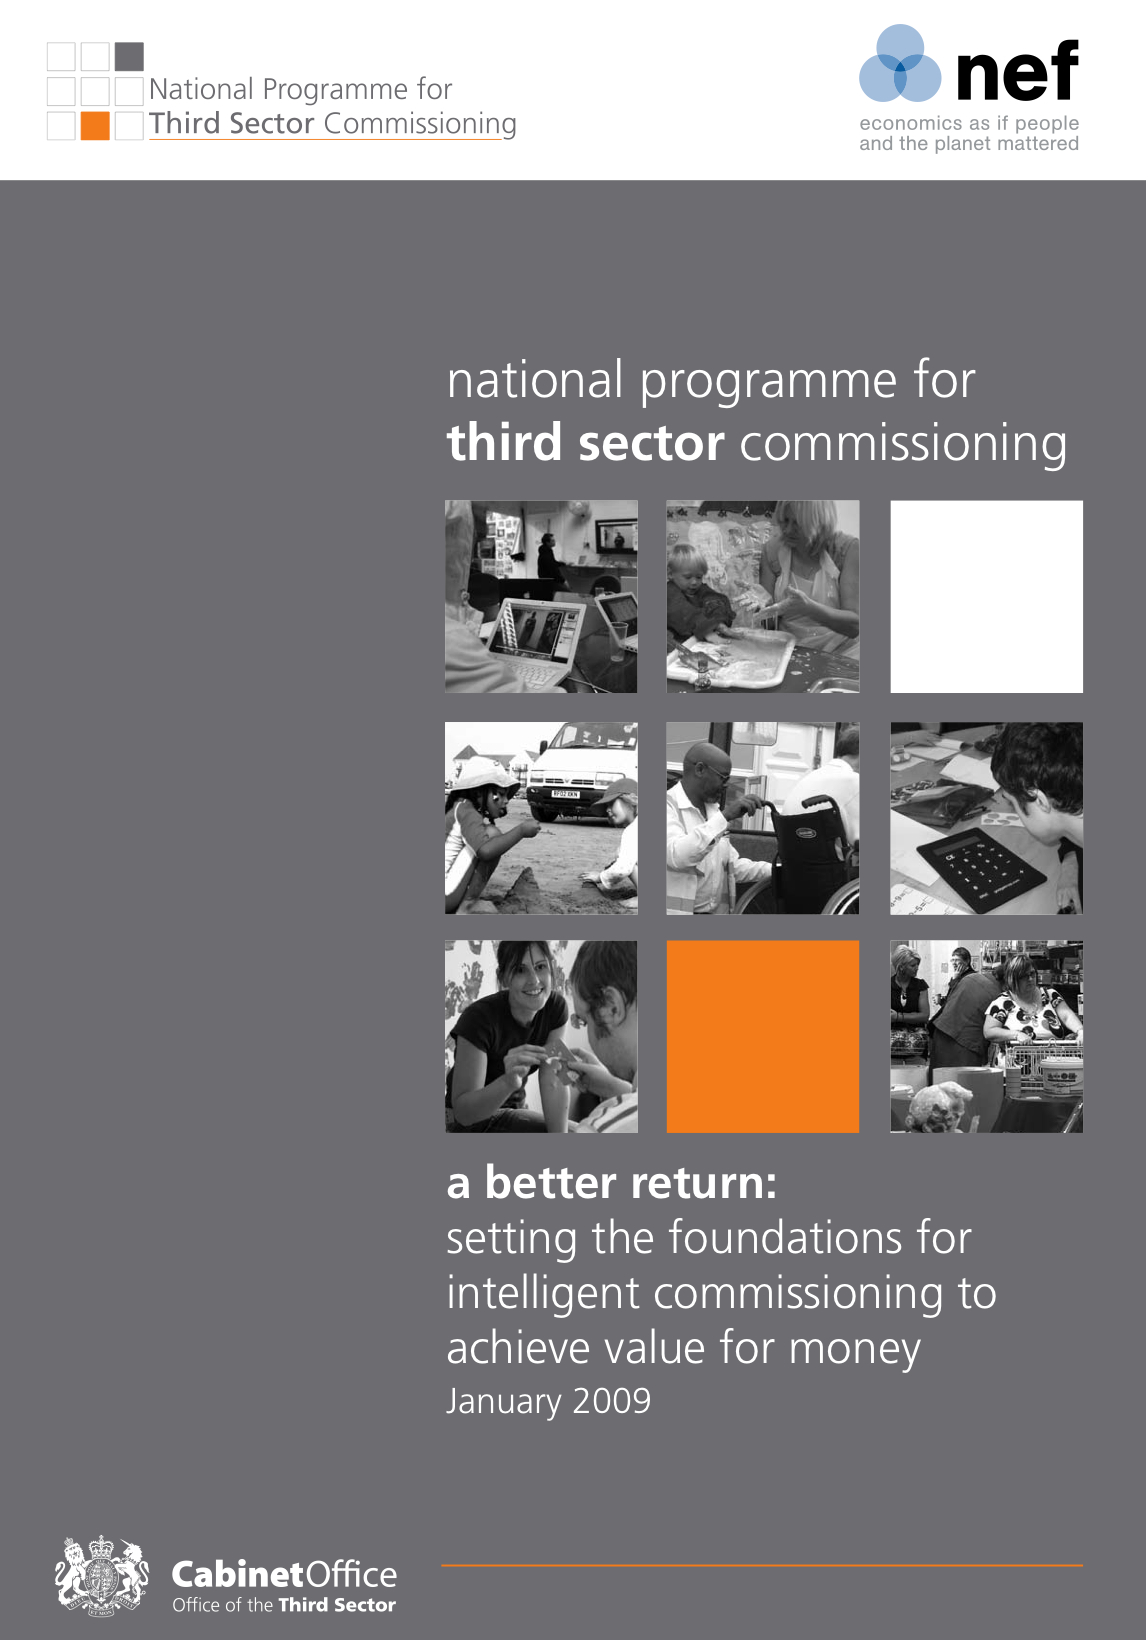 A better return: setting the foundations for intelligent commissioning to achieve value for money